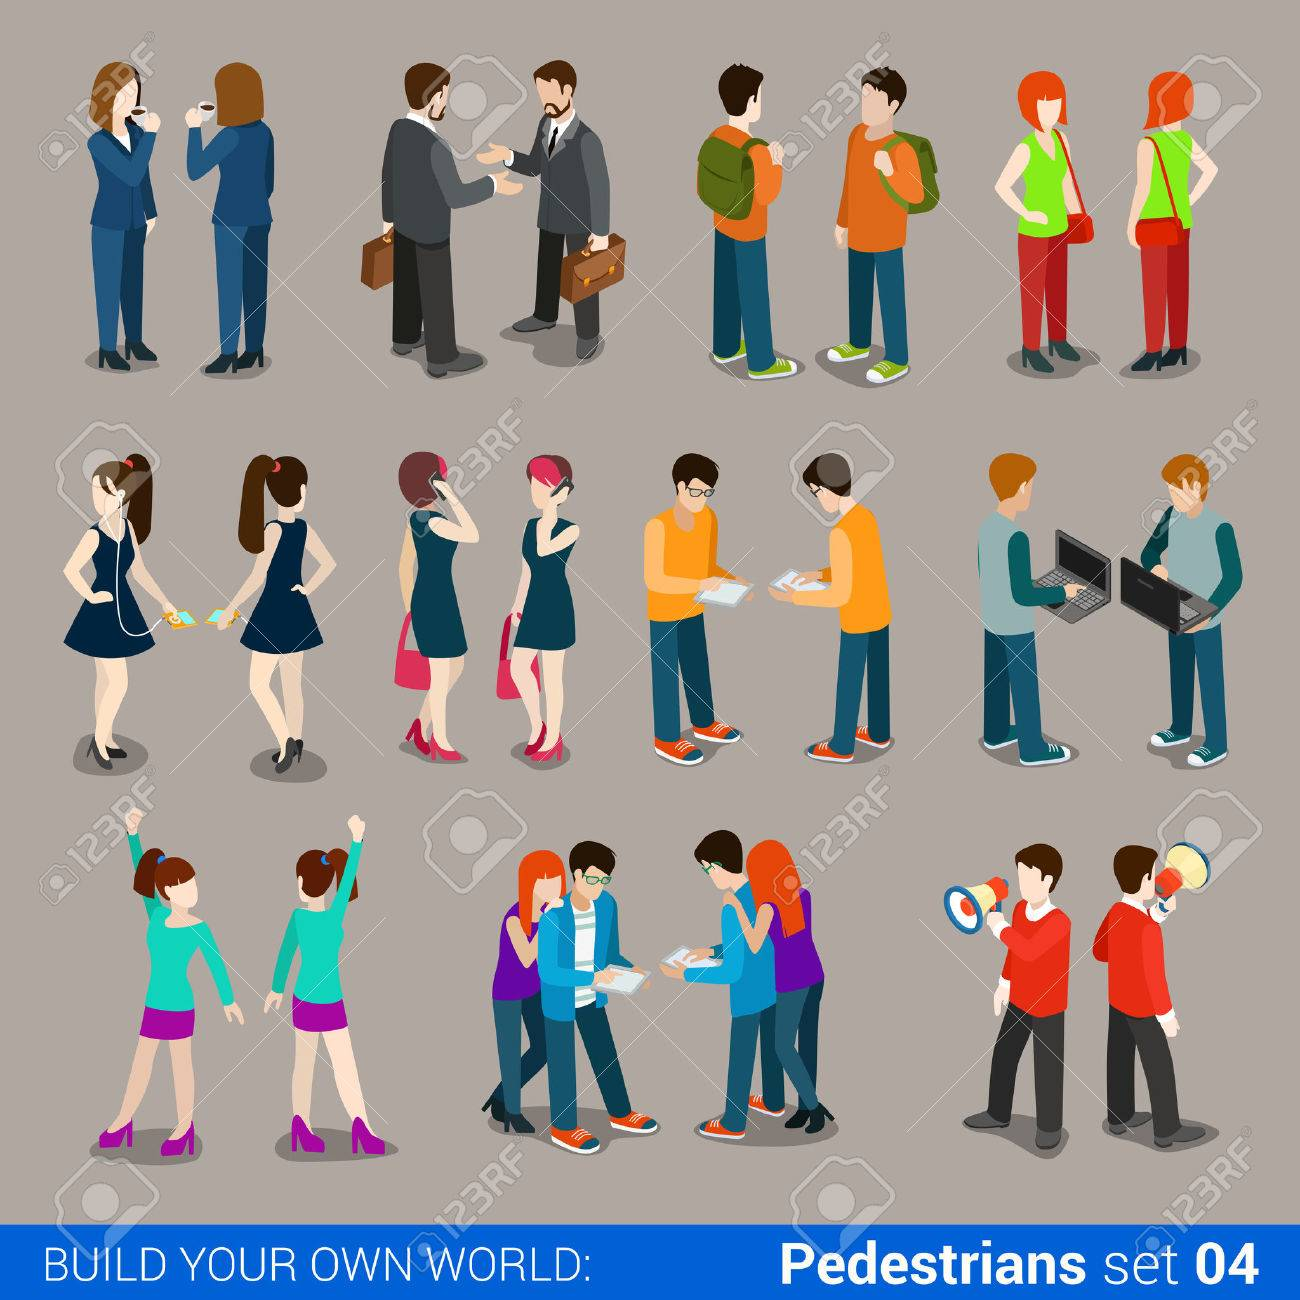 Flat 3d isometric high quality city pedestrians icon set. Business people, casual, teens, couples. Build your own world web infographic collection. Stock Vector - 54641264